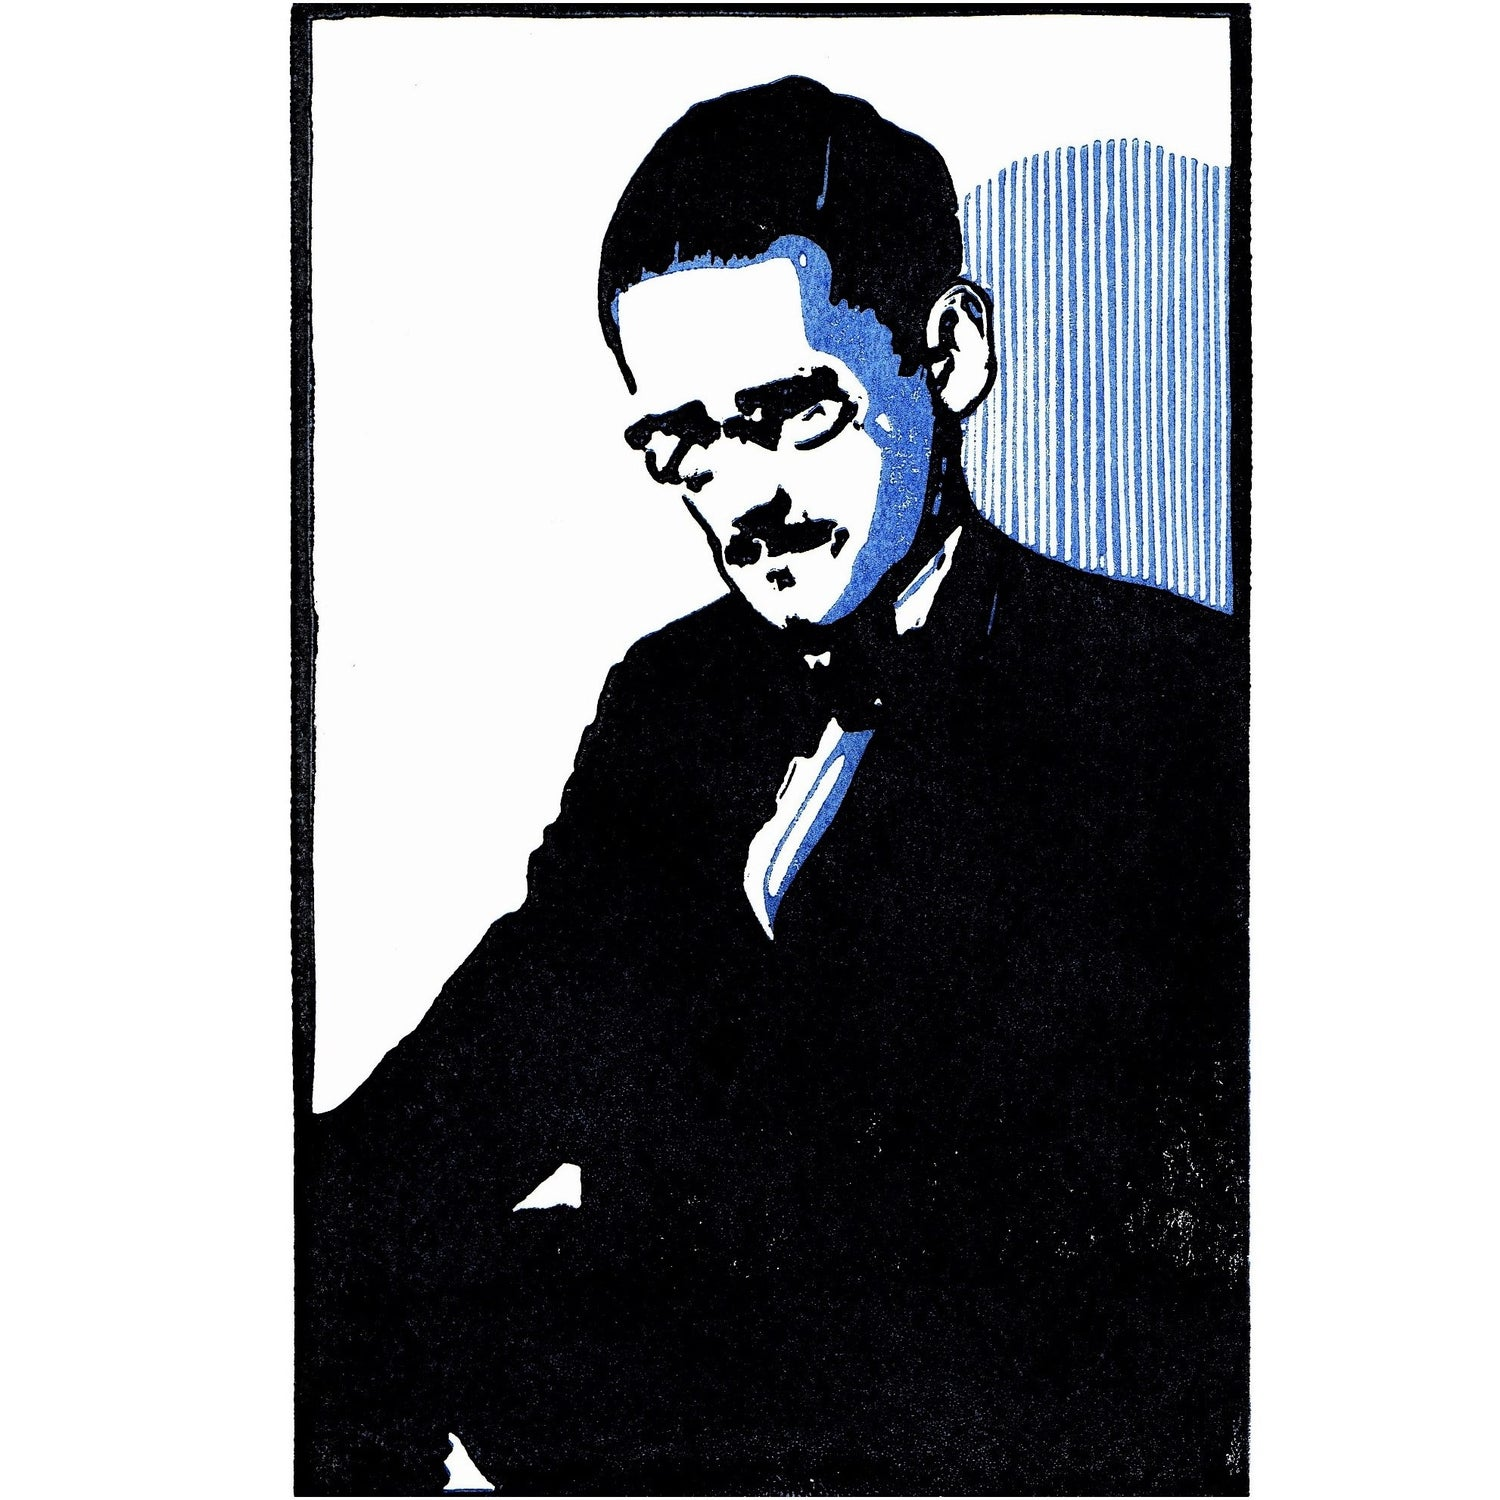 Image of JAMES JOYCE - portrait of the artist